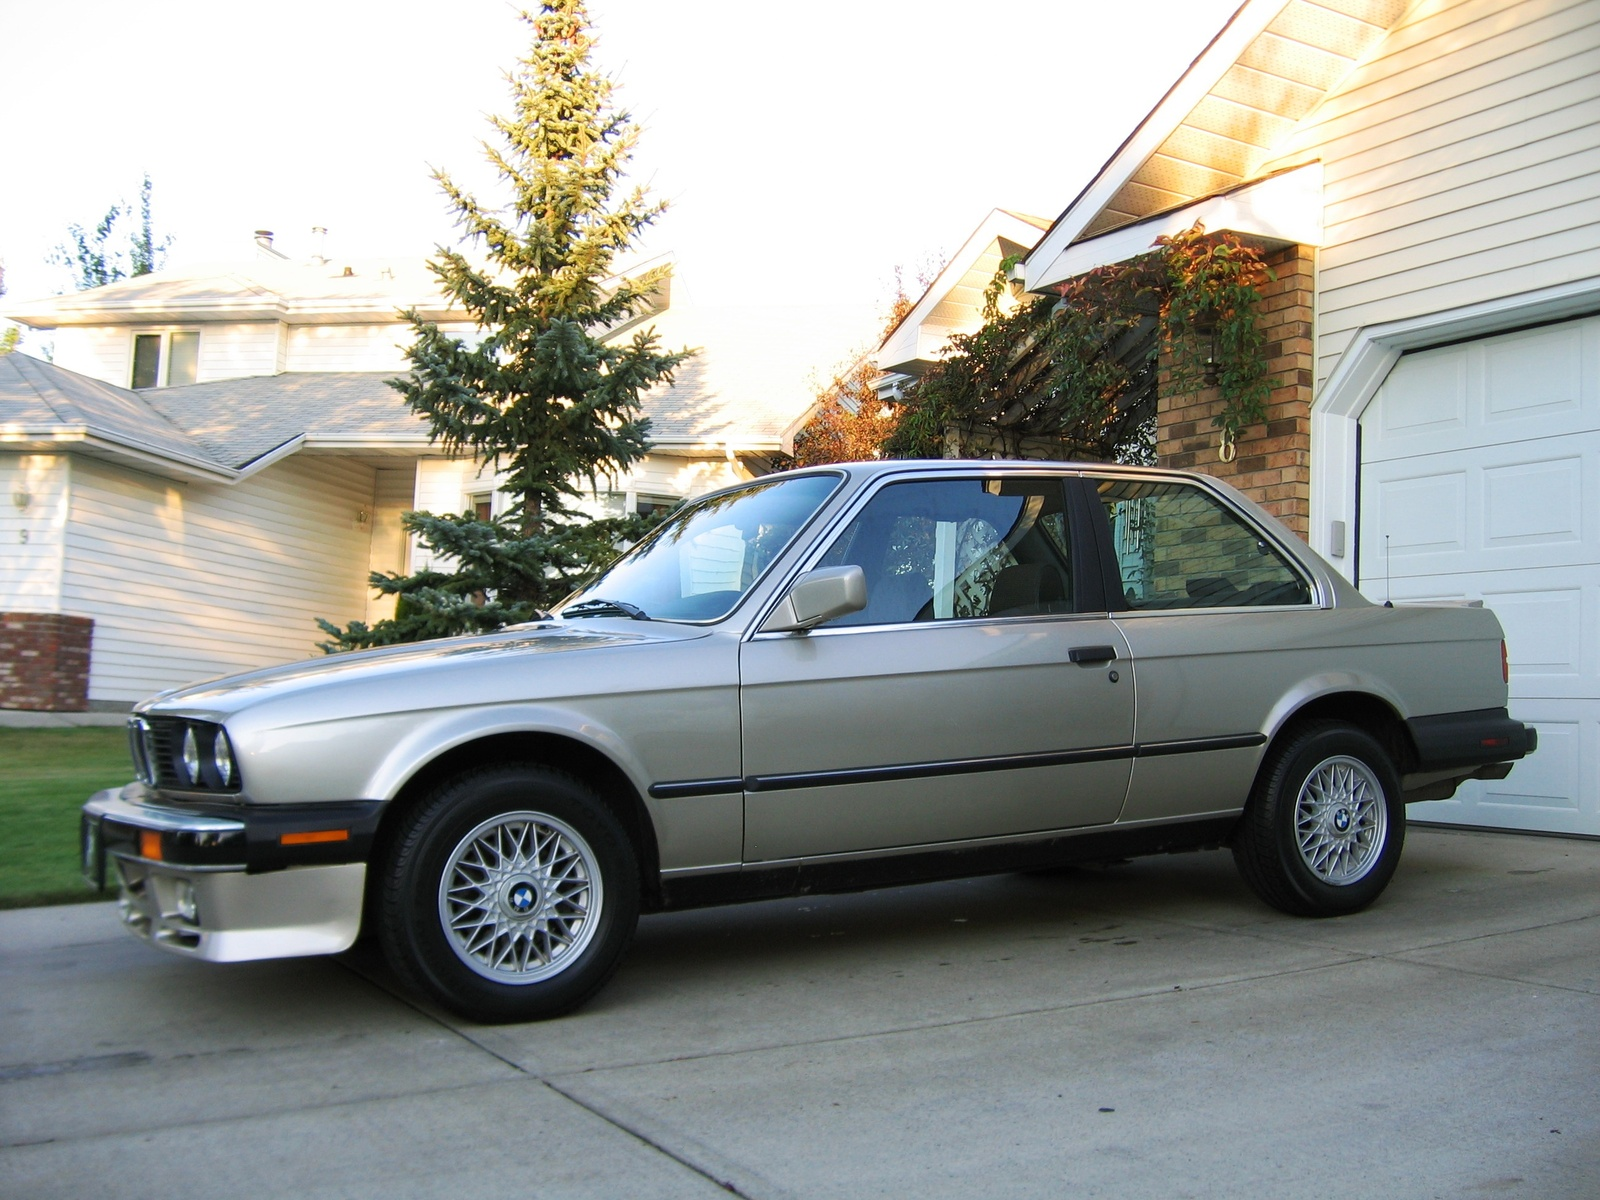 I Convertible For Sale. Series Pictures CarGurus. I ...